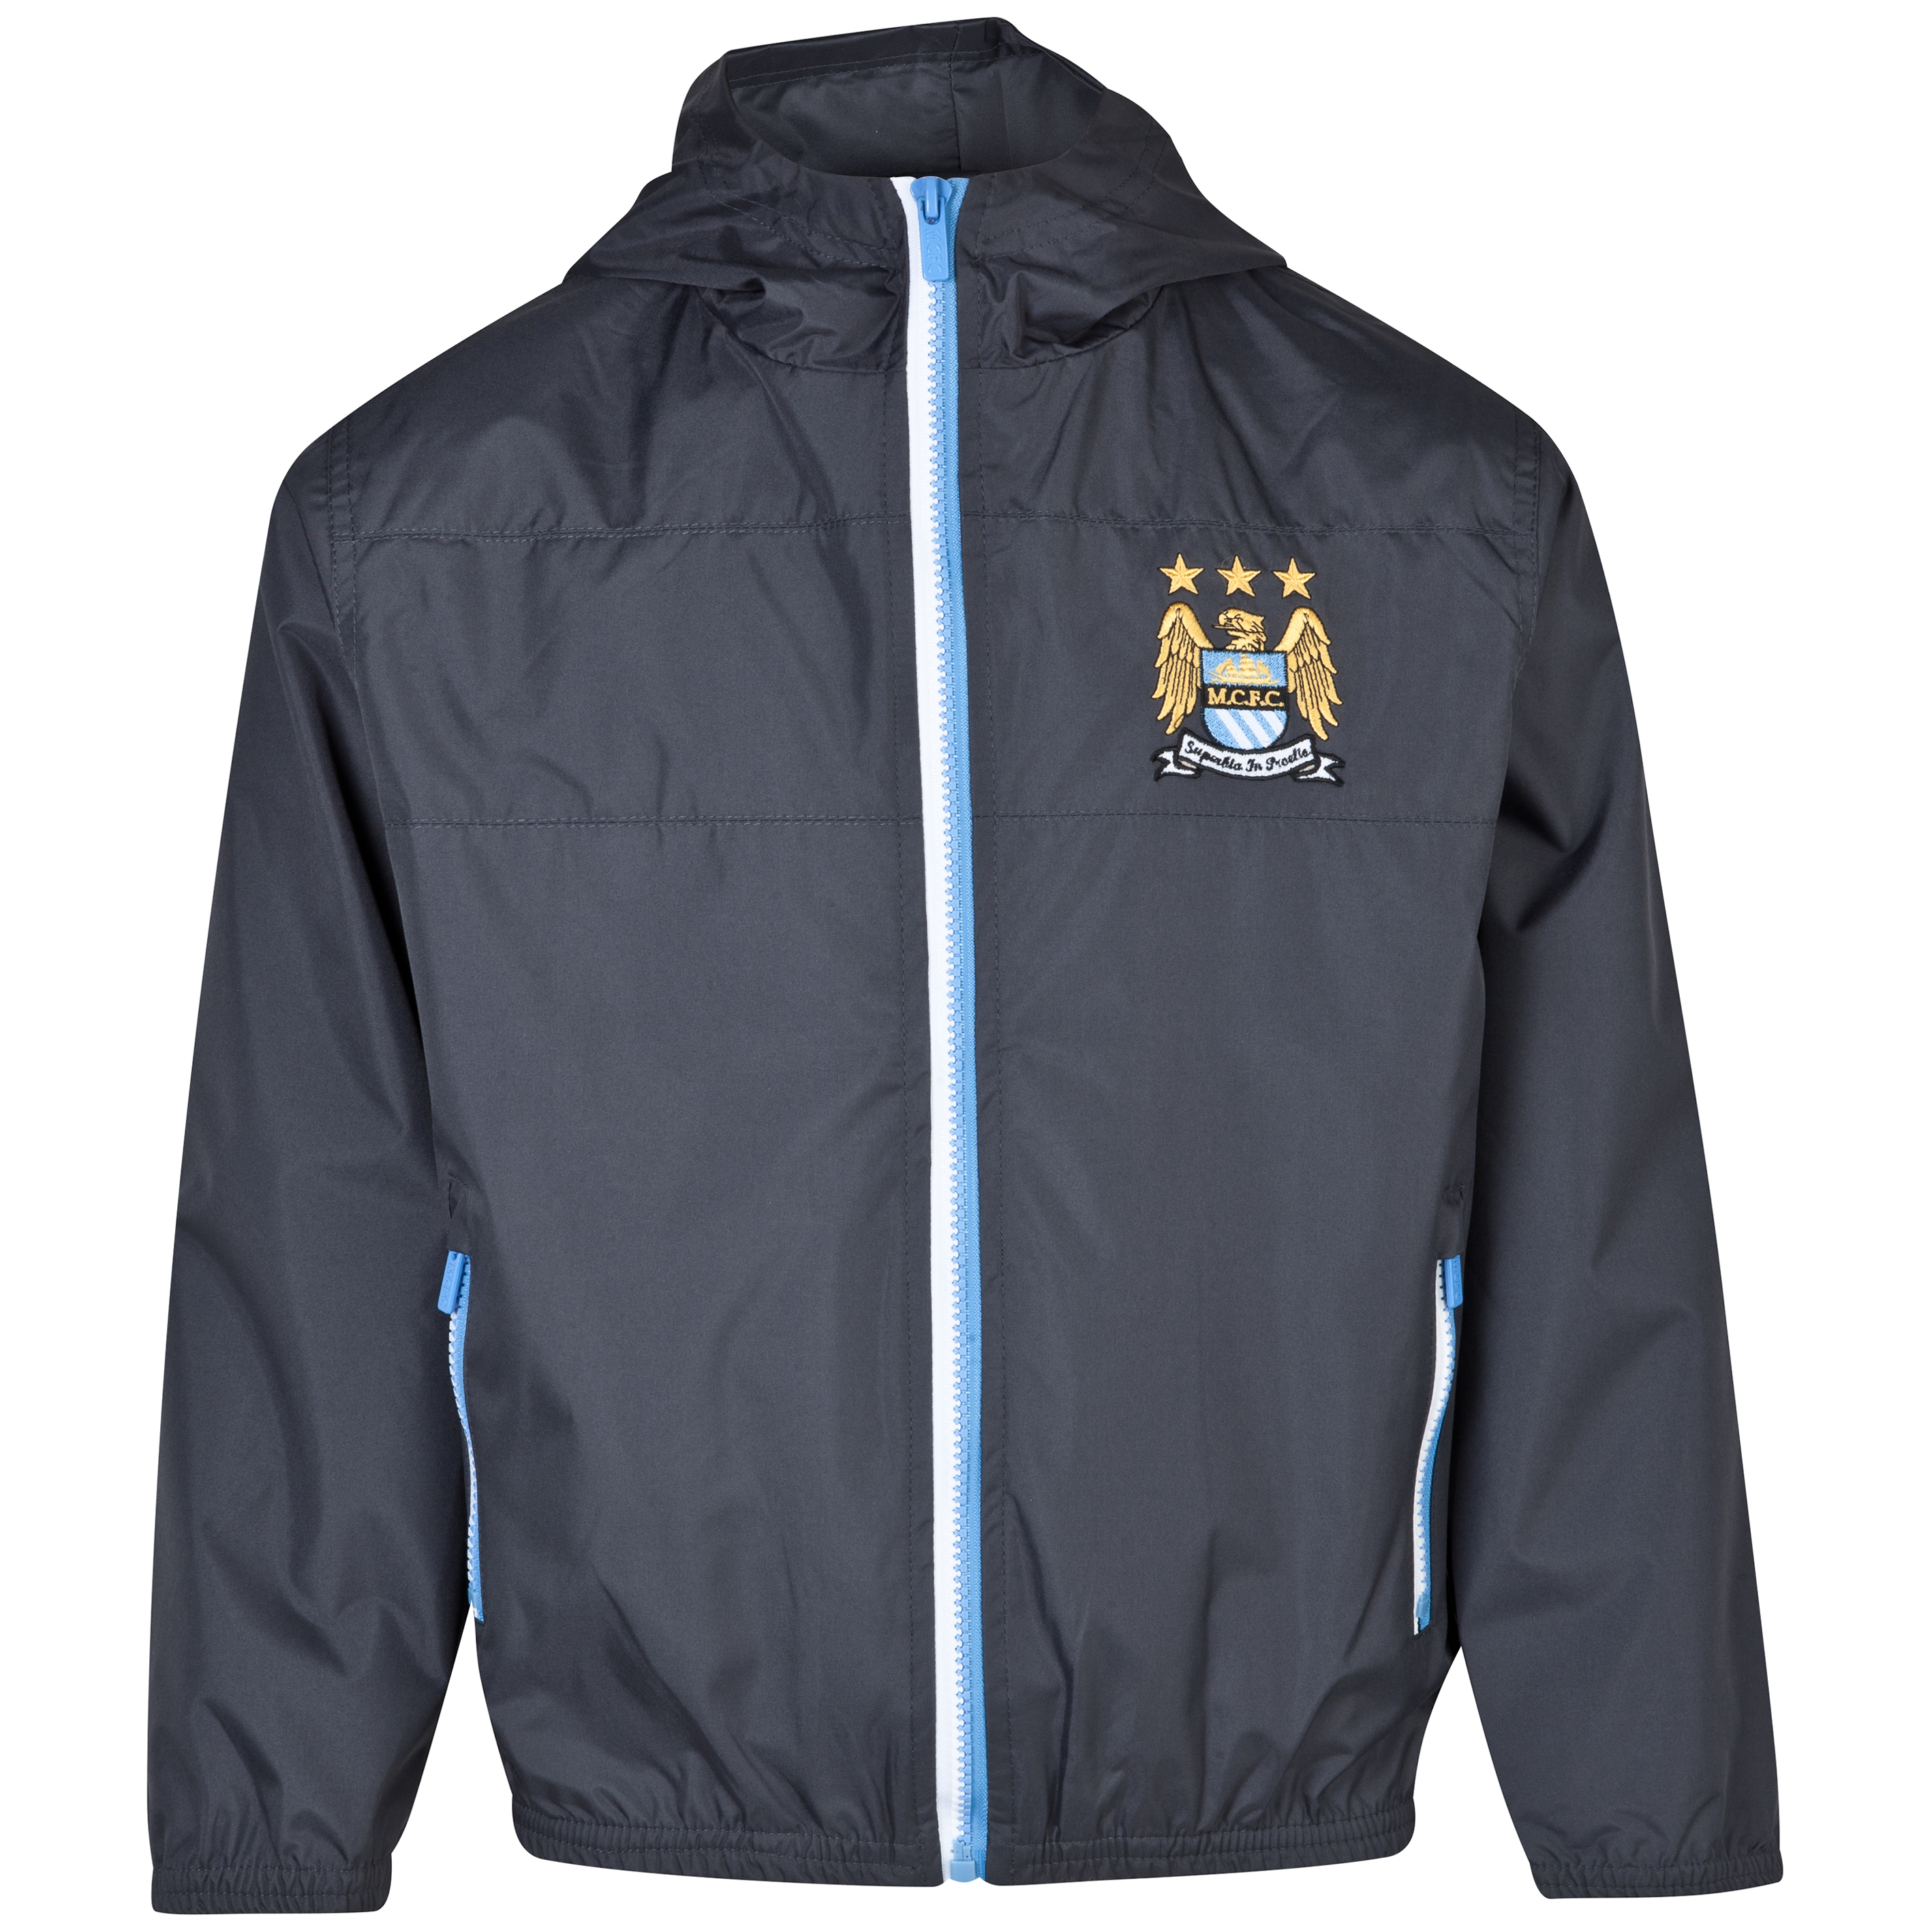 Manchester City Essentials Shower Jacket - Older Boys Dk Grey